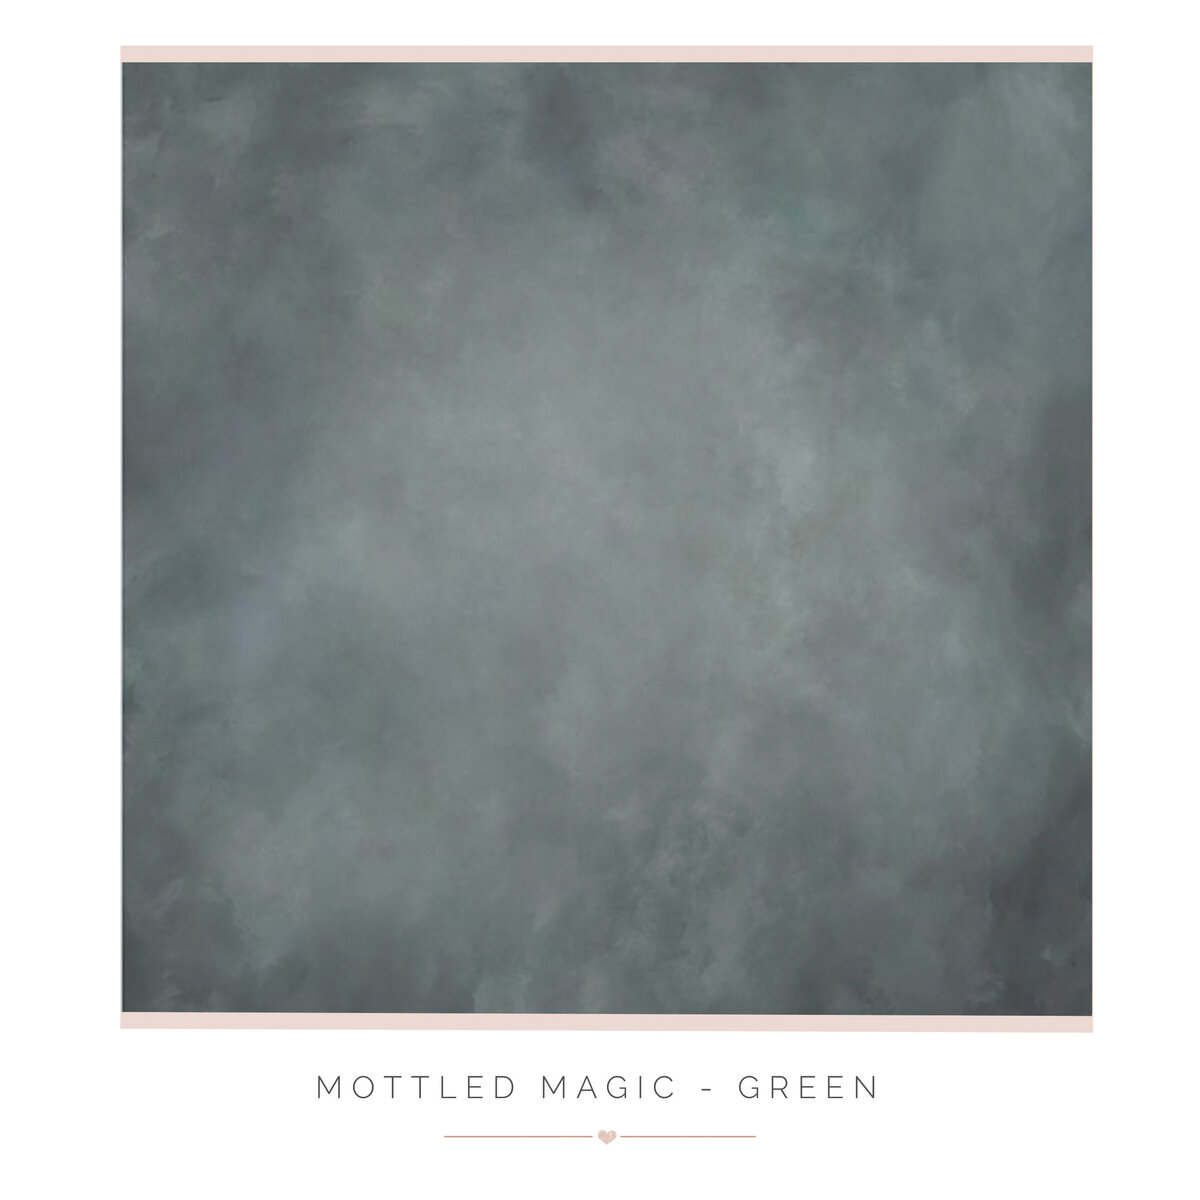 Mottled Magic - Green